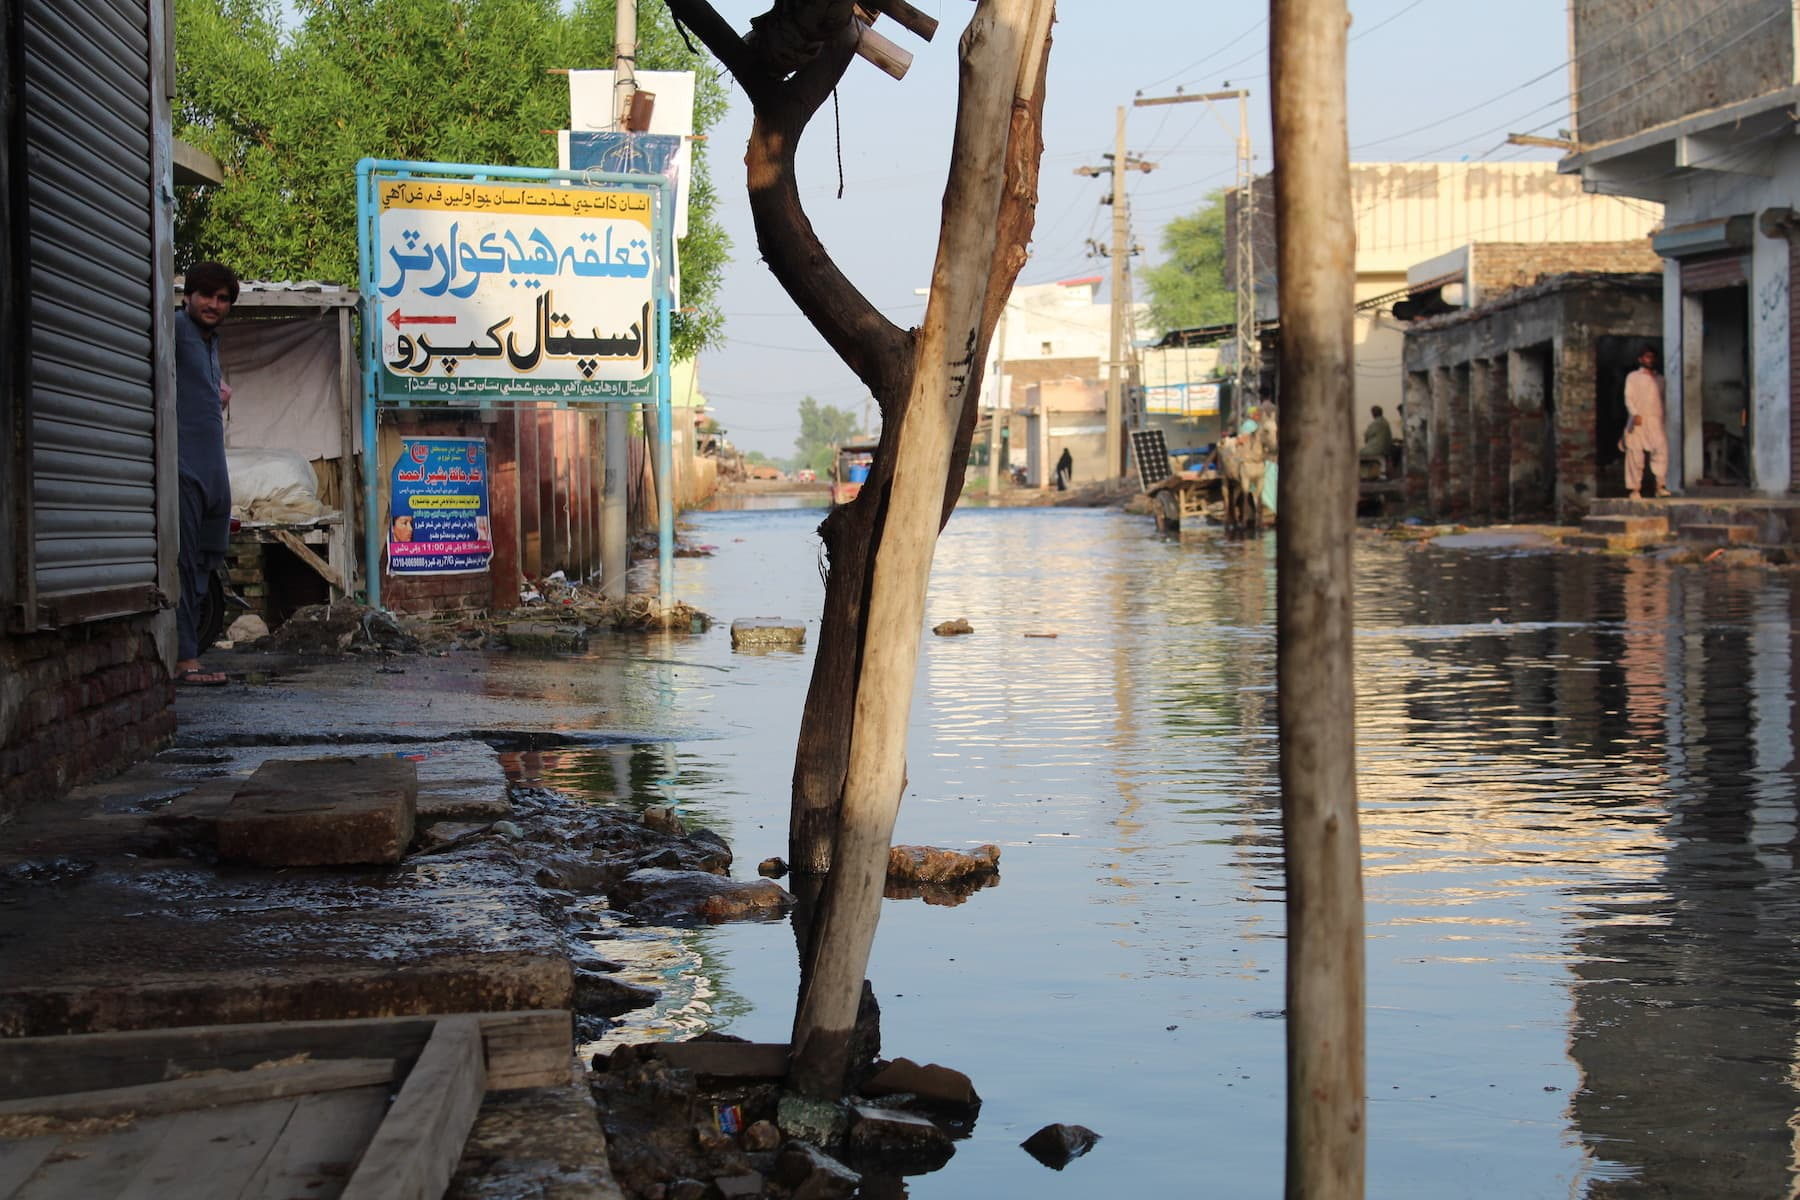 The road leading to the Taluka Headquarter Hospital Khipro is flooded in waist-deep water, mixed with sewerage for the past 15 days. — Photo by author